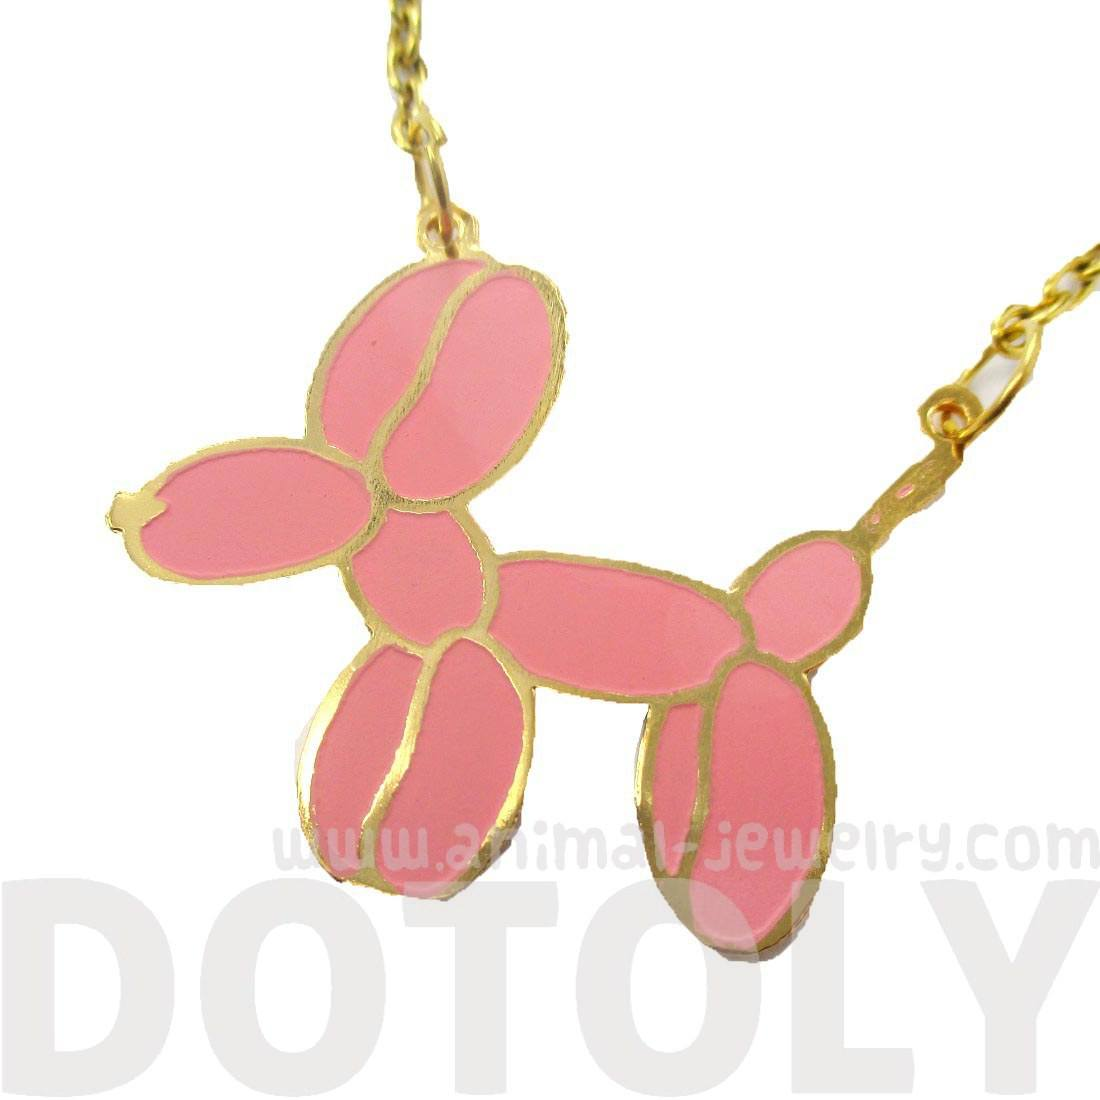 Balloon Dog Shaped Jeff Koons Inspired Animal Pendant Necklace in Pink